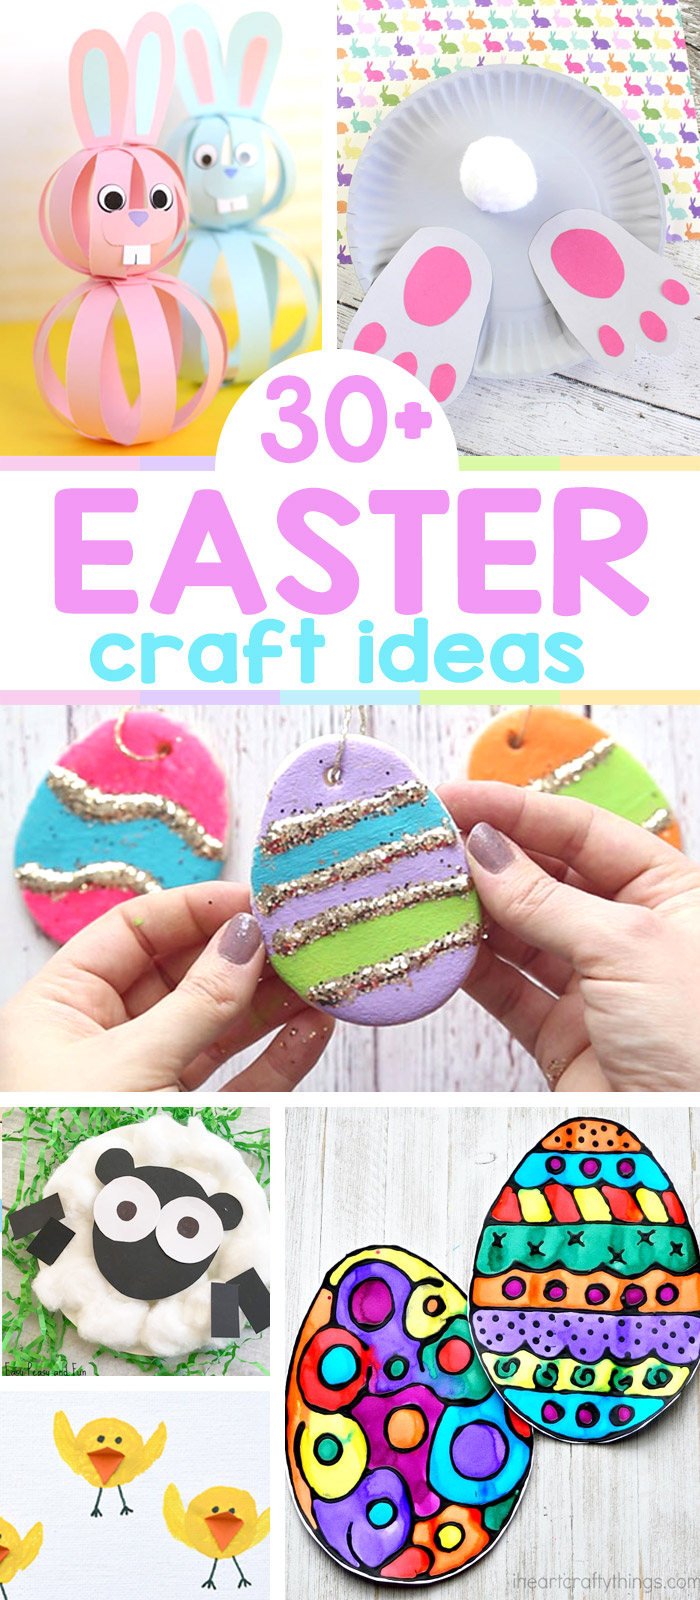 pinterest easter craft ideas 25 easter crafts for lots of crafty ideas easy 5187